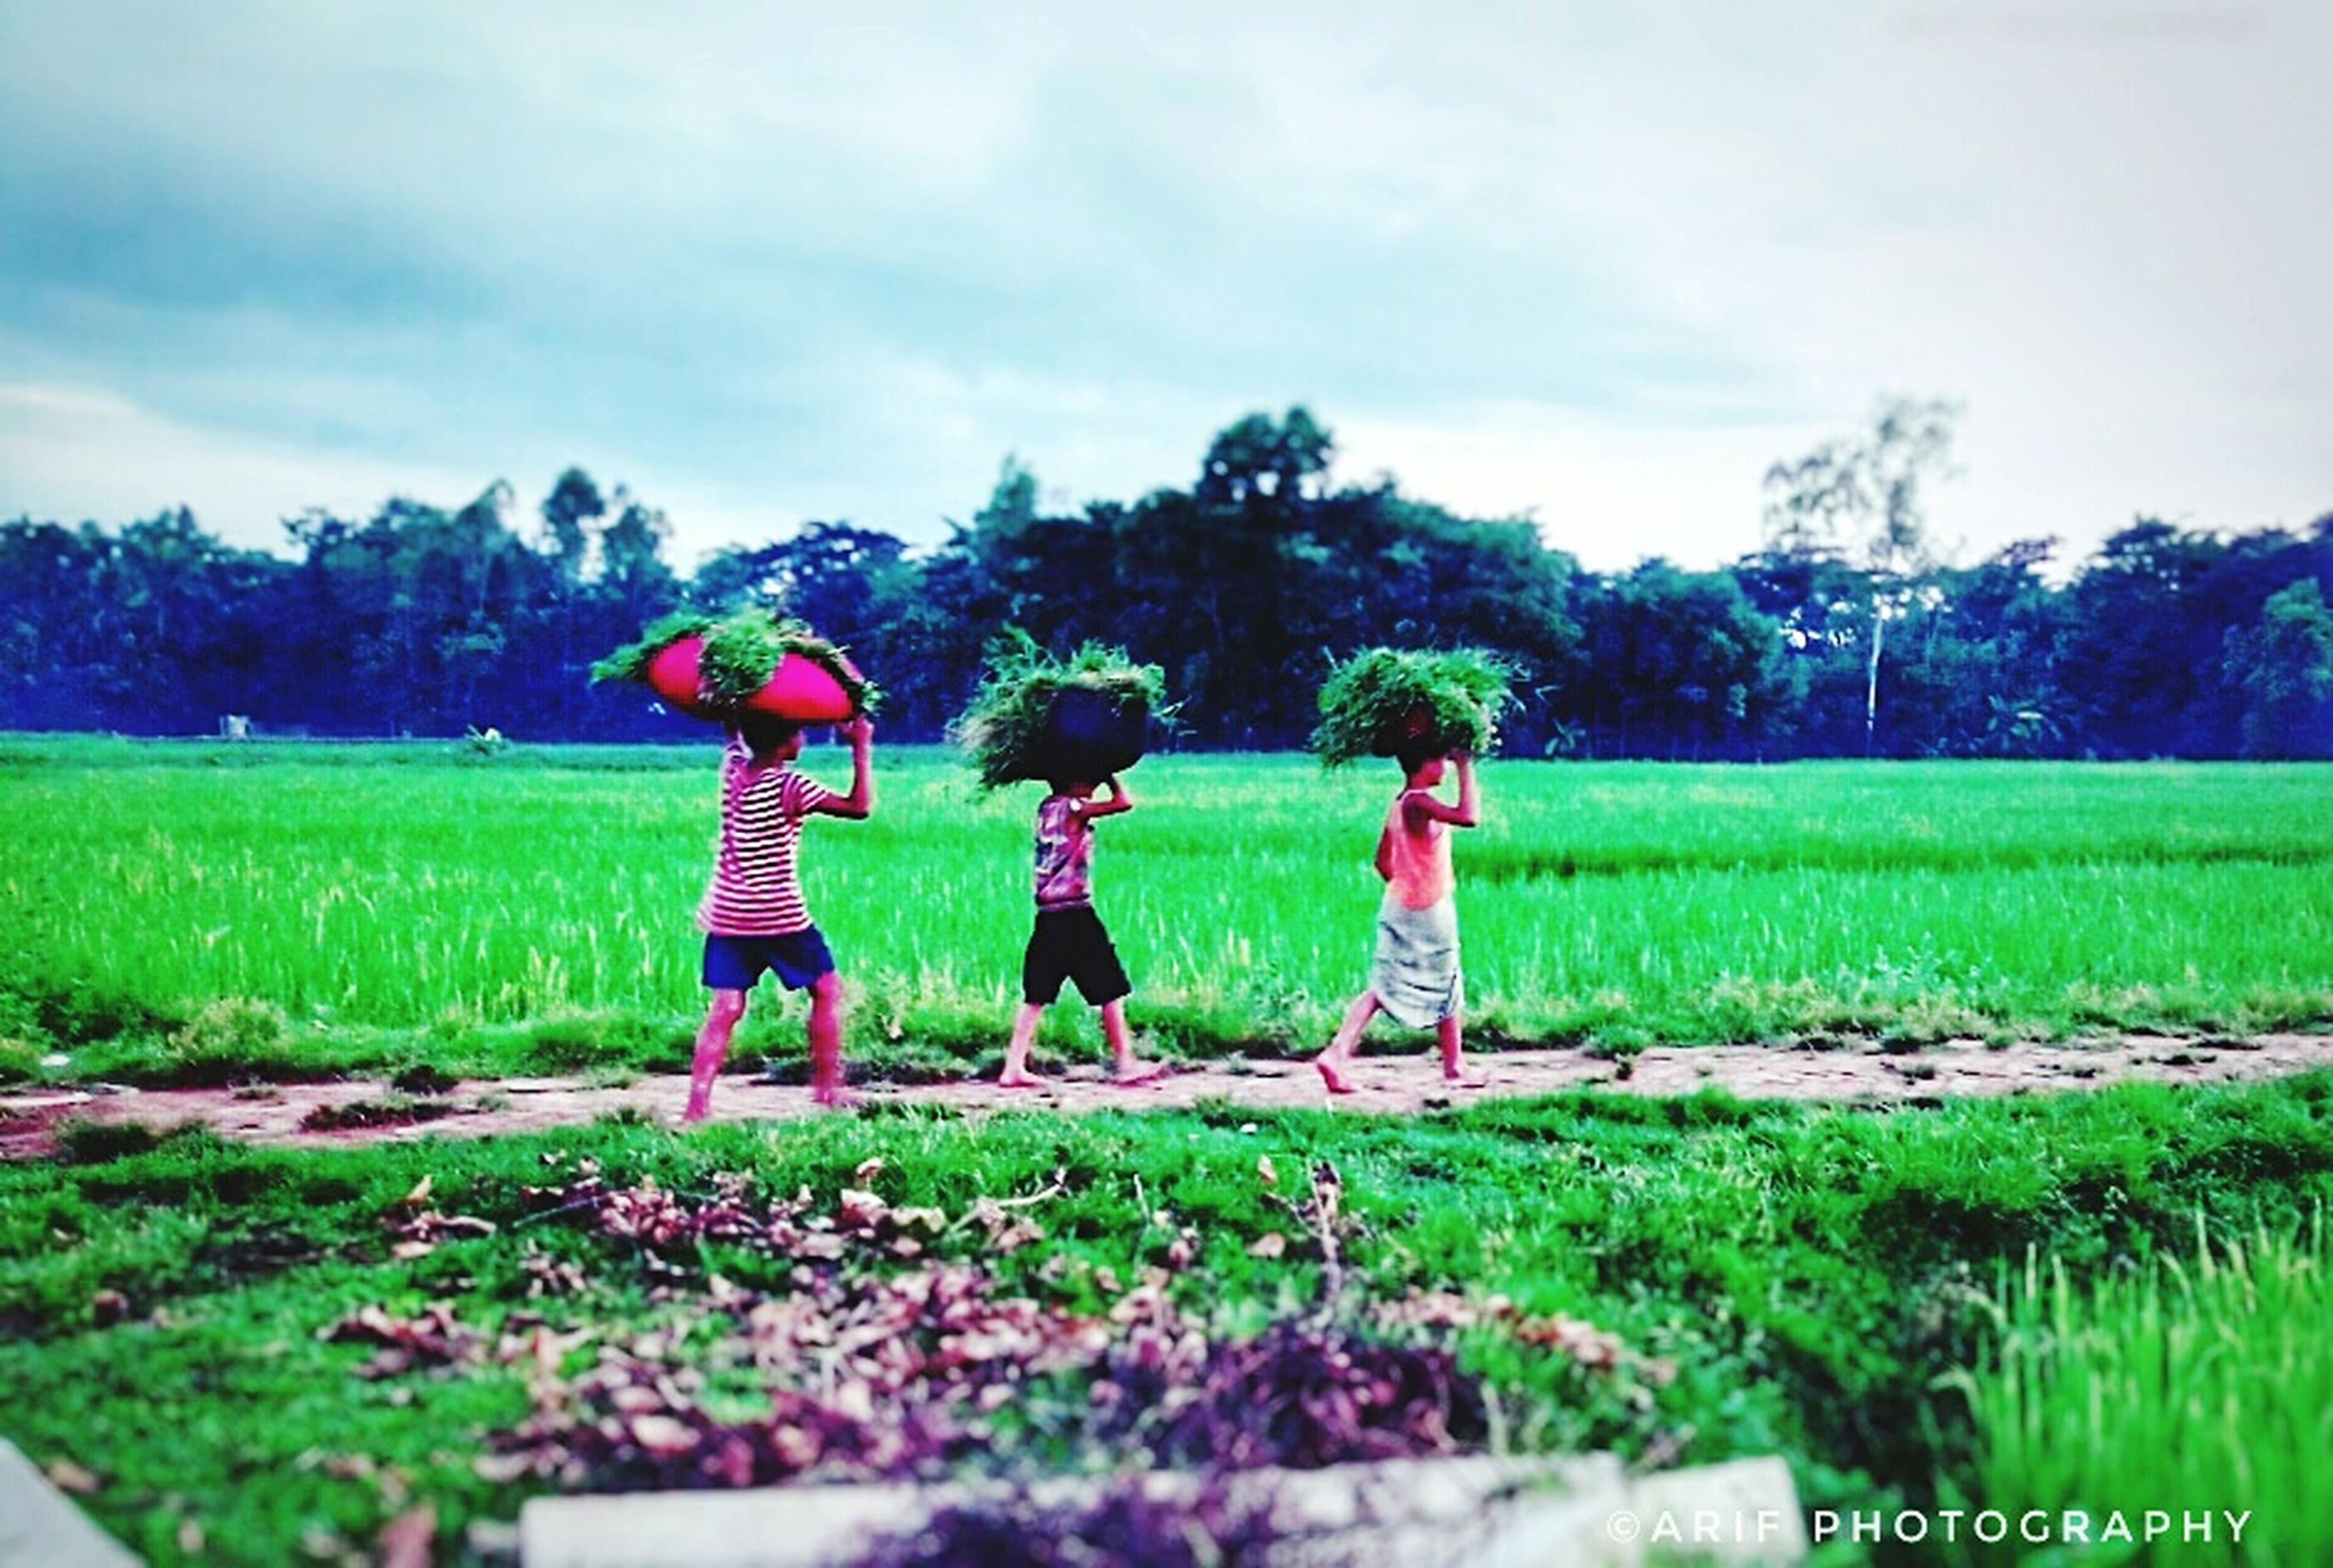 childhood, field, growth, grass, tree, togetherness, real people, green color, boys, day, girls, sky, outdoors, nature, full length, standing, child, landscape, beauty in nature, people